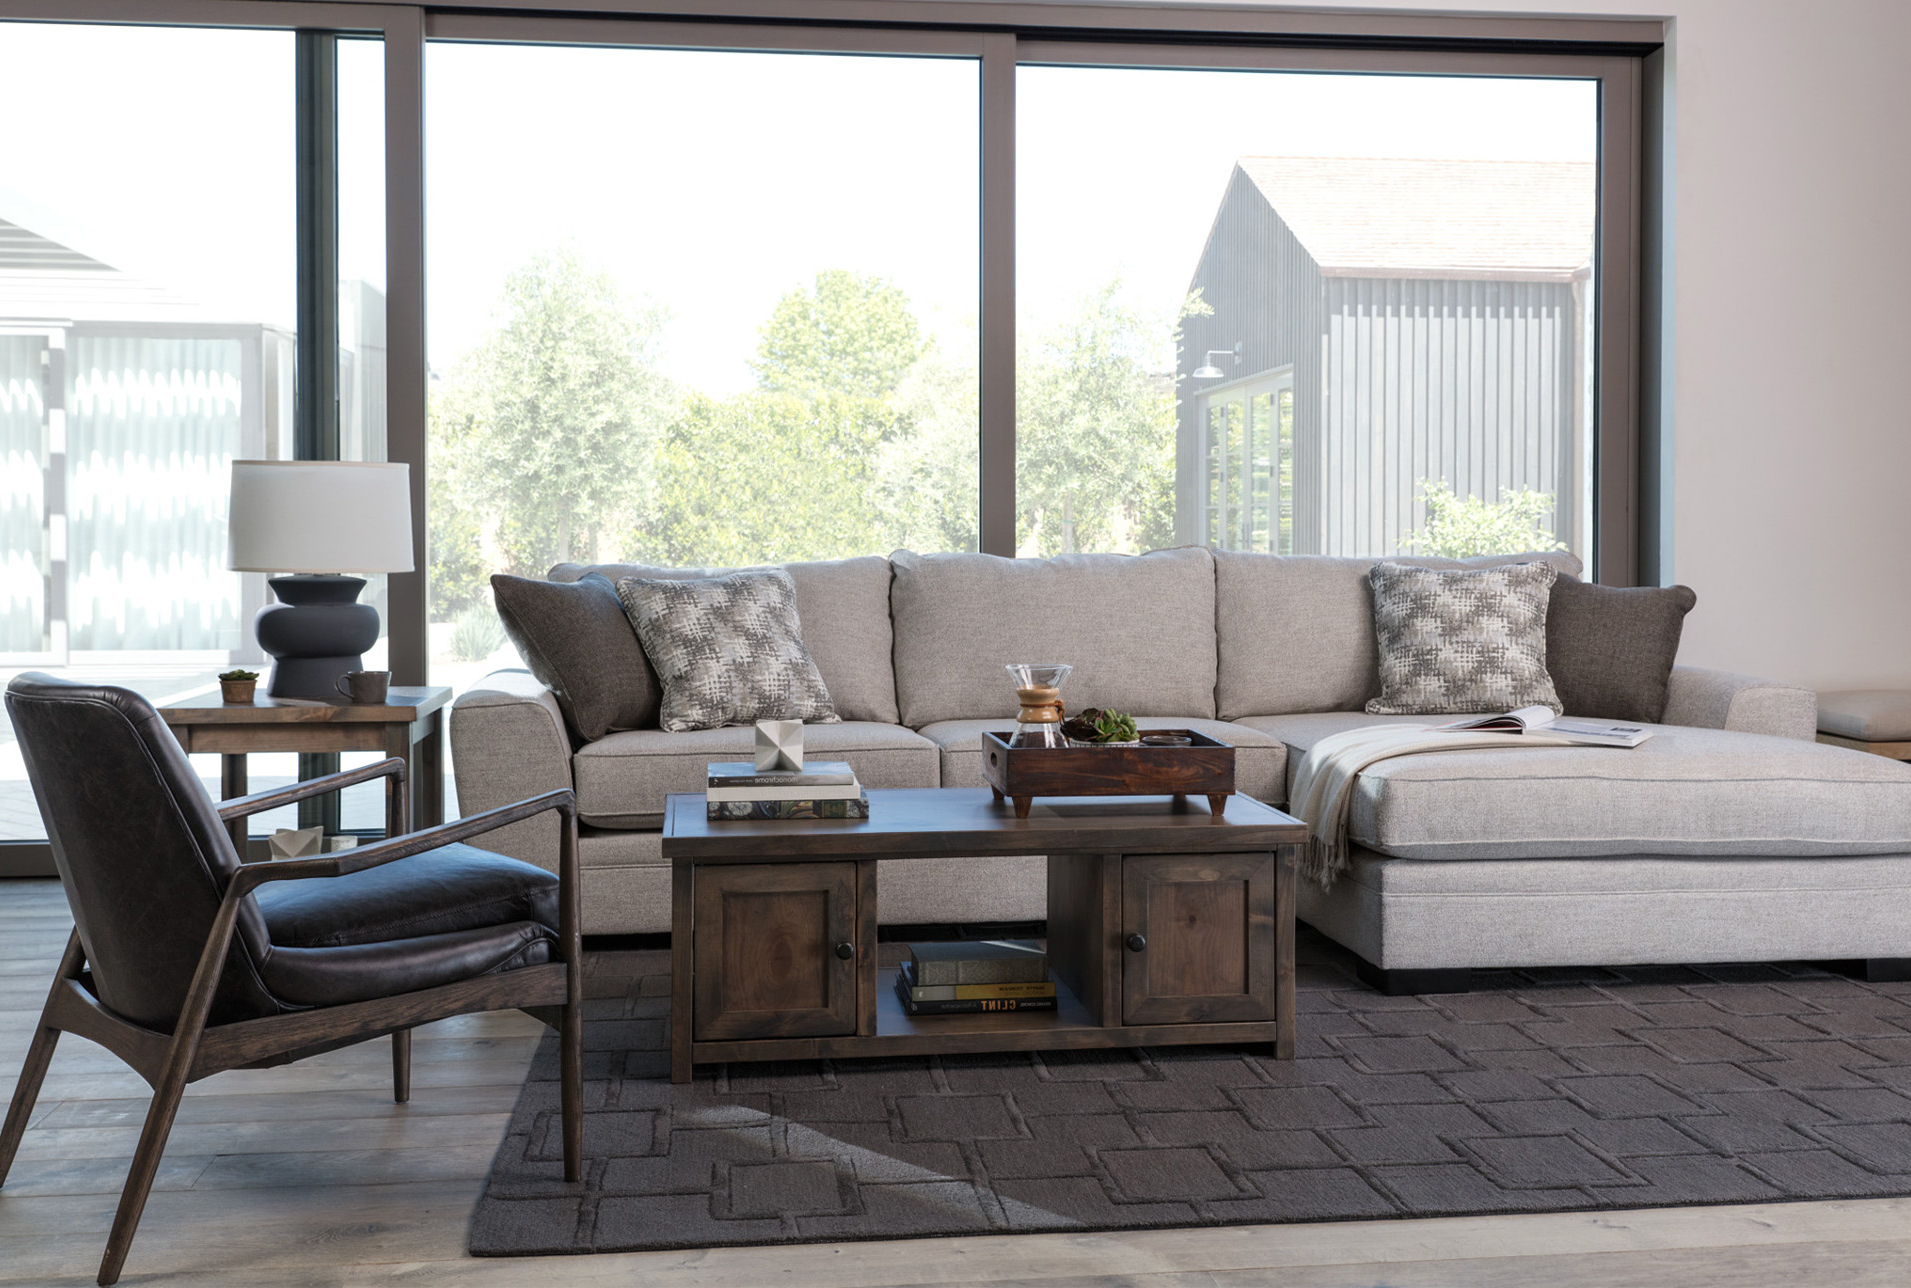 Delano 2 Piece Sectionals With Raf Oversized Chaise With Regard To Famous Delano 2 Piece Sectional W/raf Oversized Chaise In 2018 (Gallery 4 of 20)